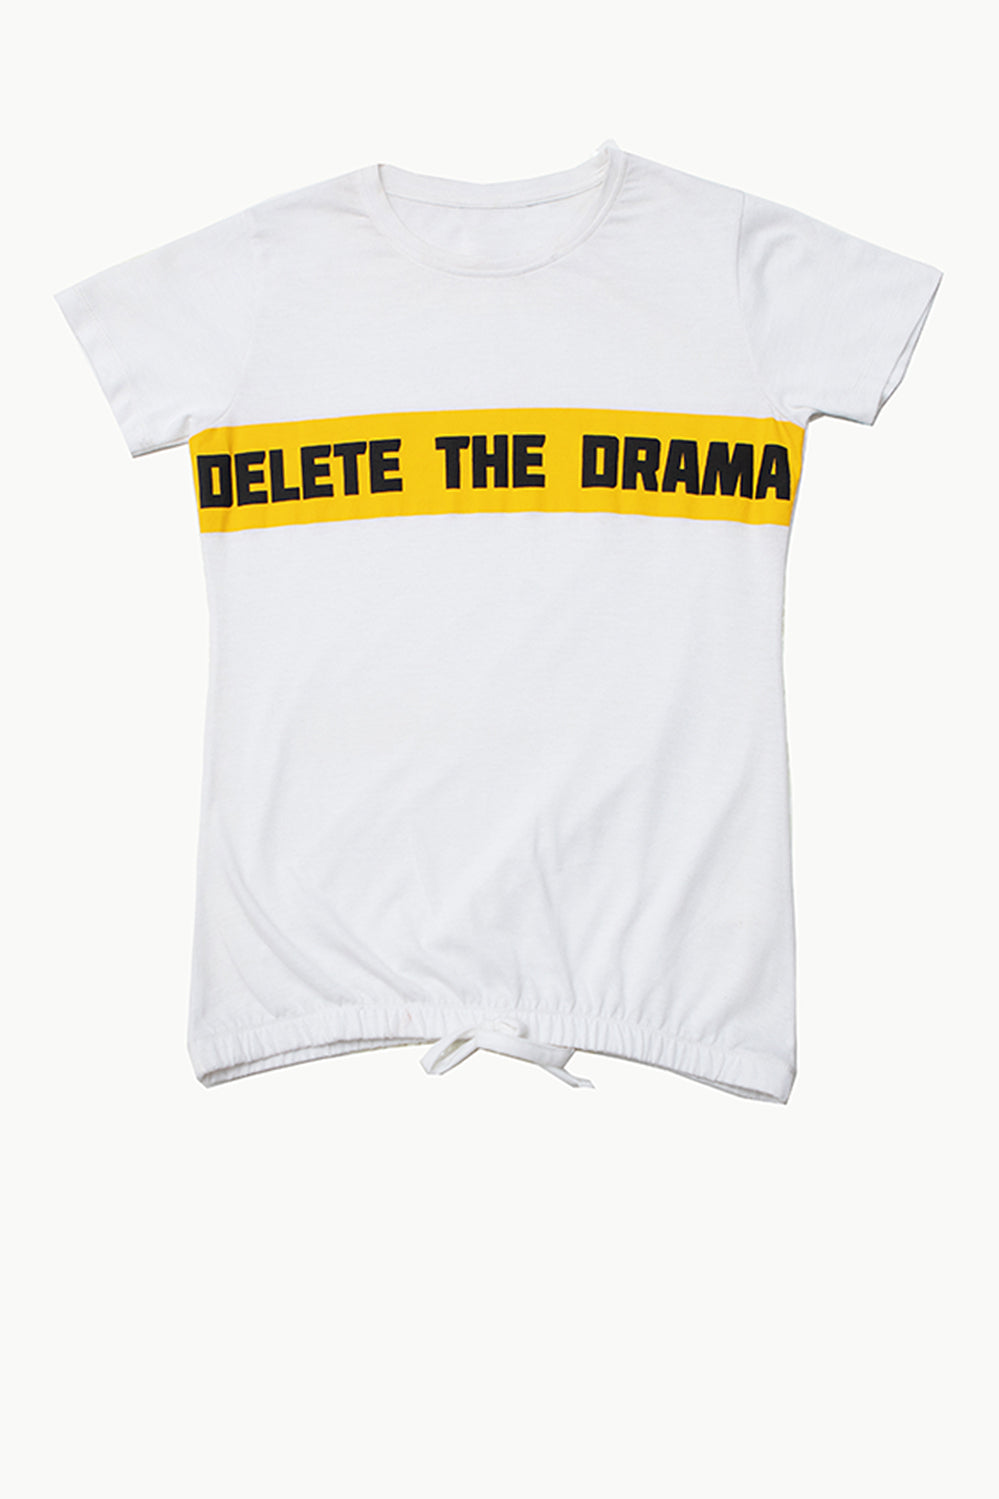 Drama Graphic Tee - HOPE NOT OUT